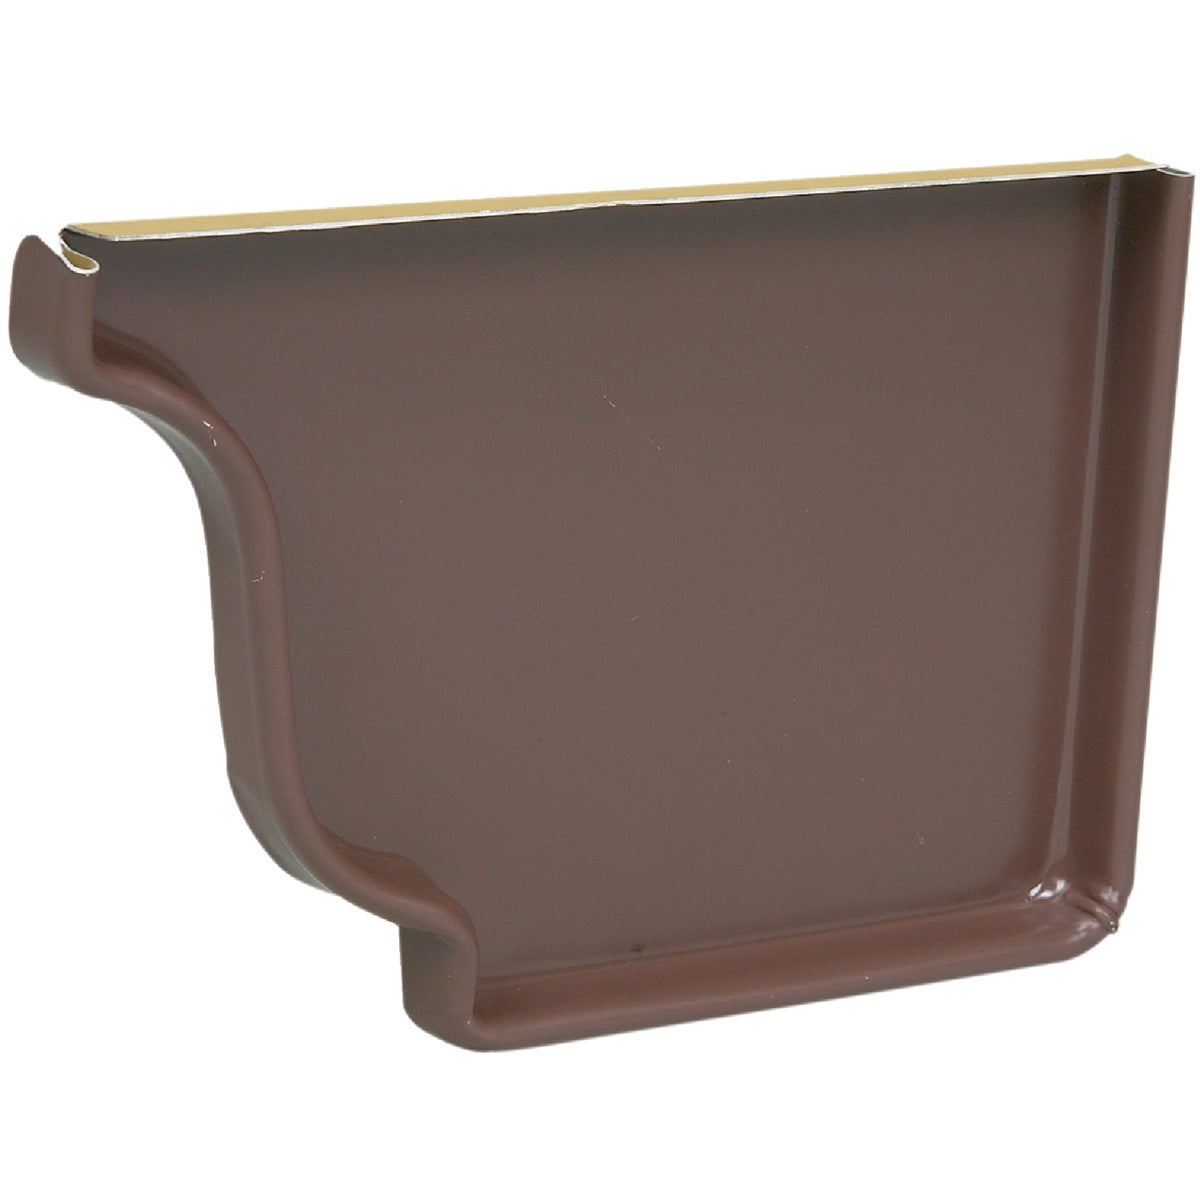 Amerimax Home Prod. BROWN RIGHT END CAP 2520619